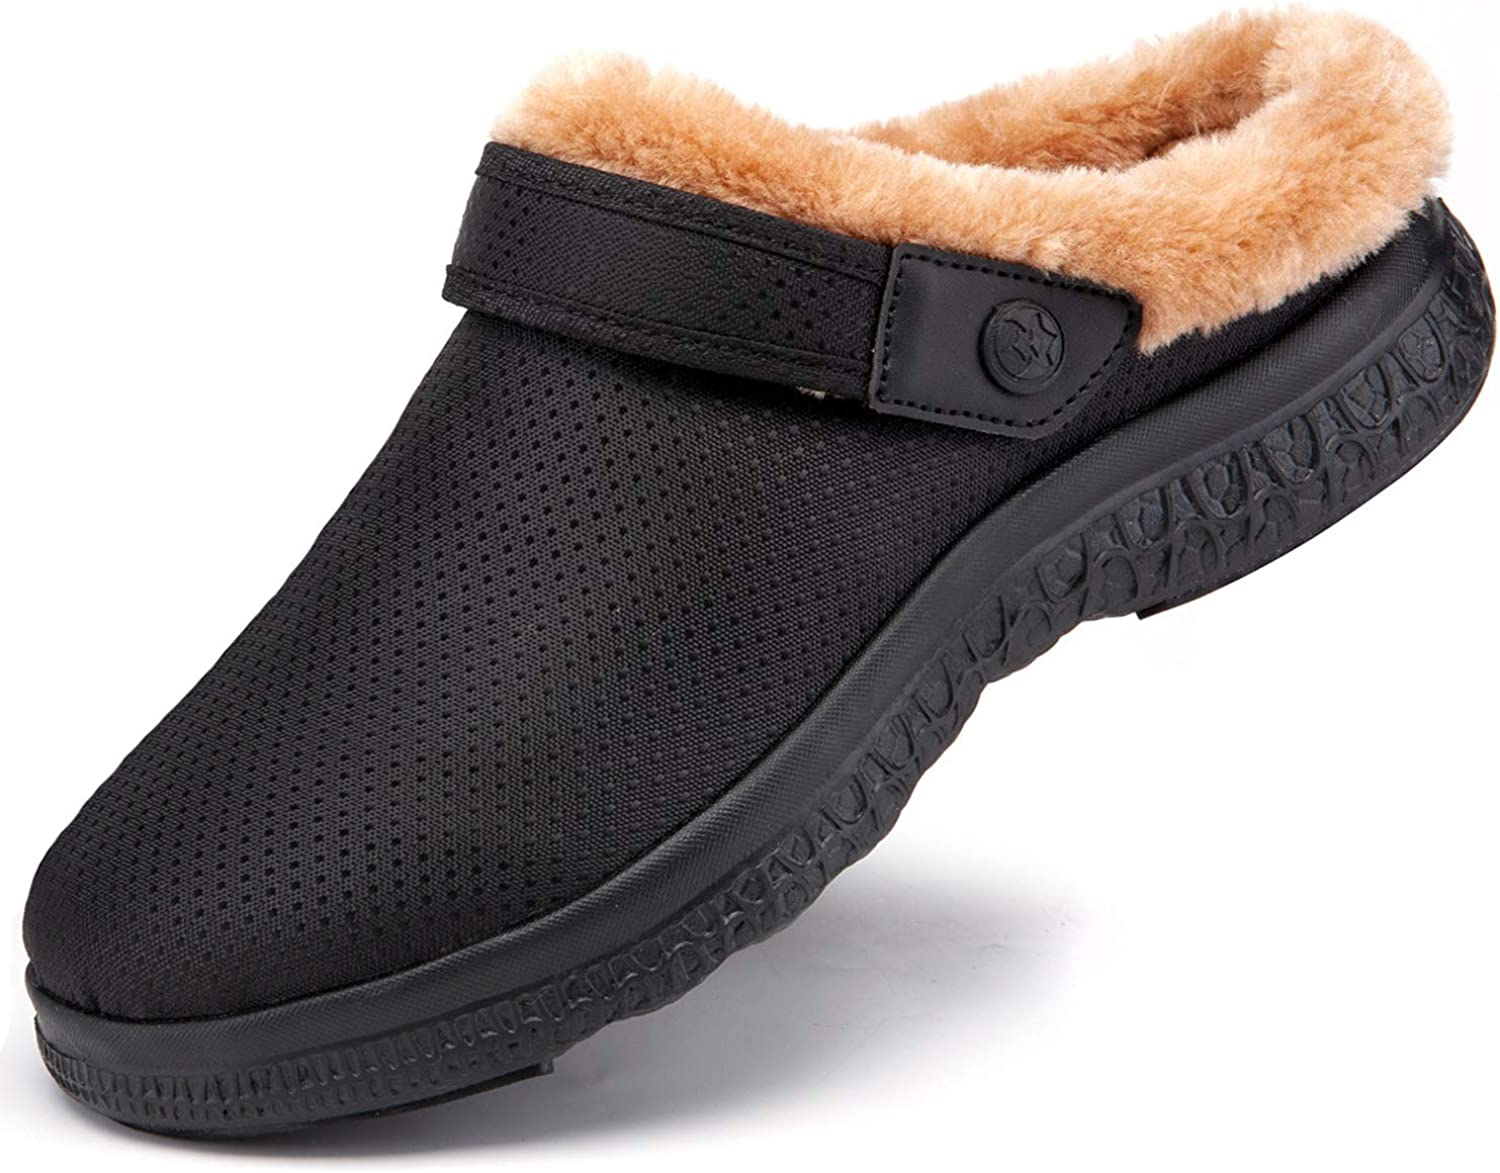 Women's Men's Lined Clogs Winter Slippers Home House Shoes Warm Plush Fleece Lining Garden Clogs Outdoor Indoor Mules